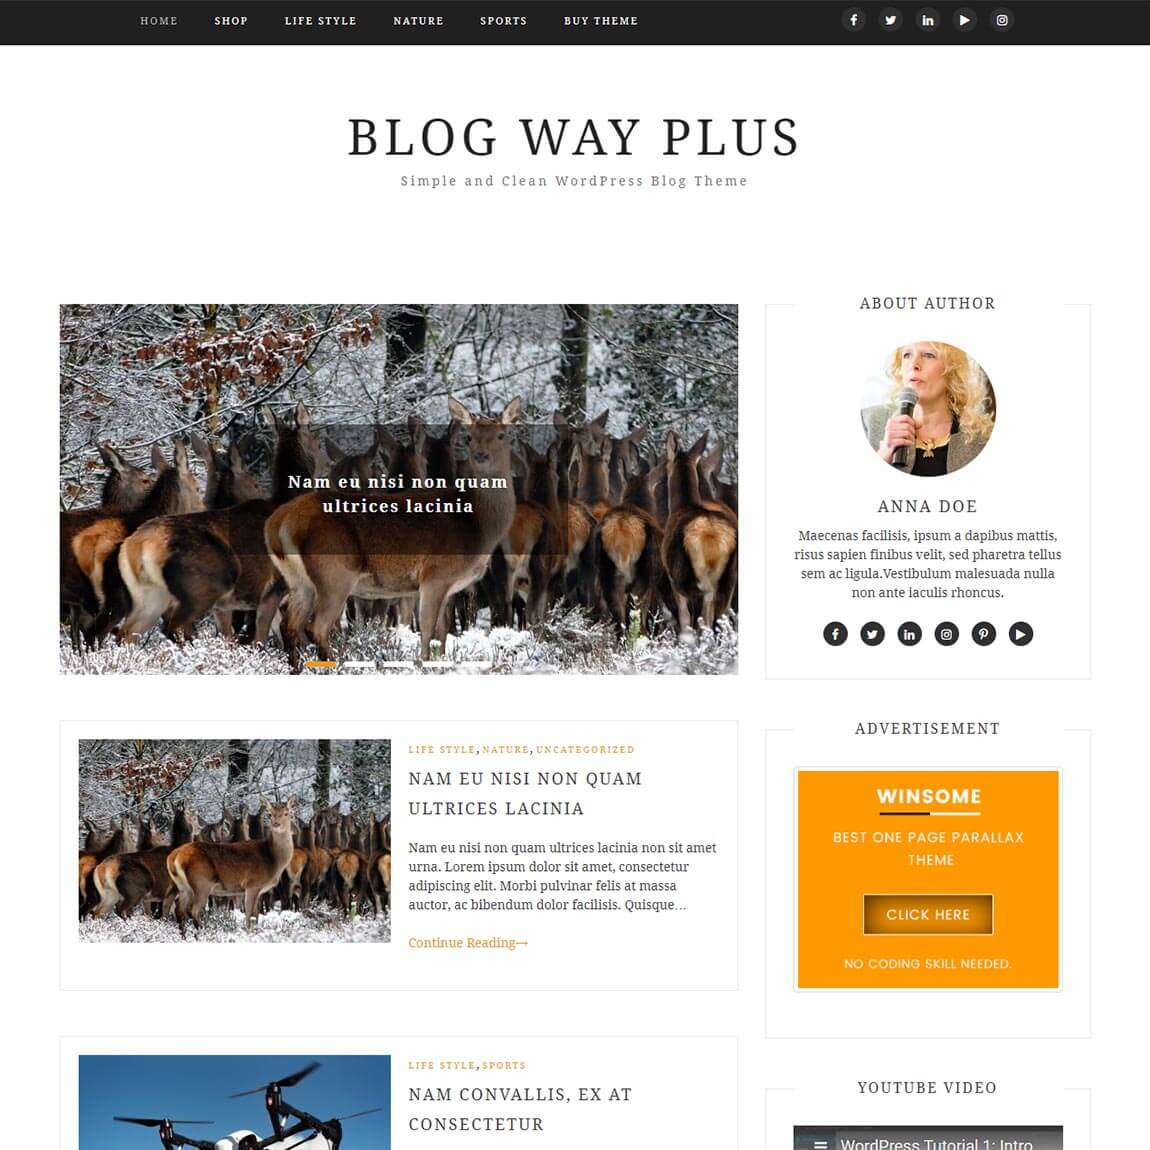 blog-Way-Plus-Simple-and-Clean-WordPress-Blog-Theme